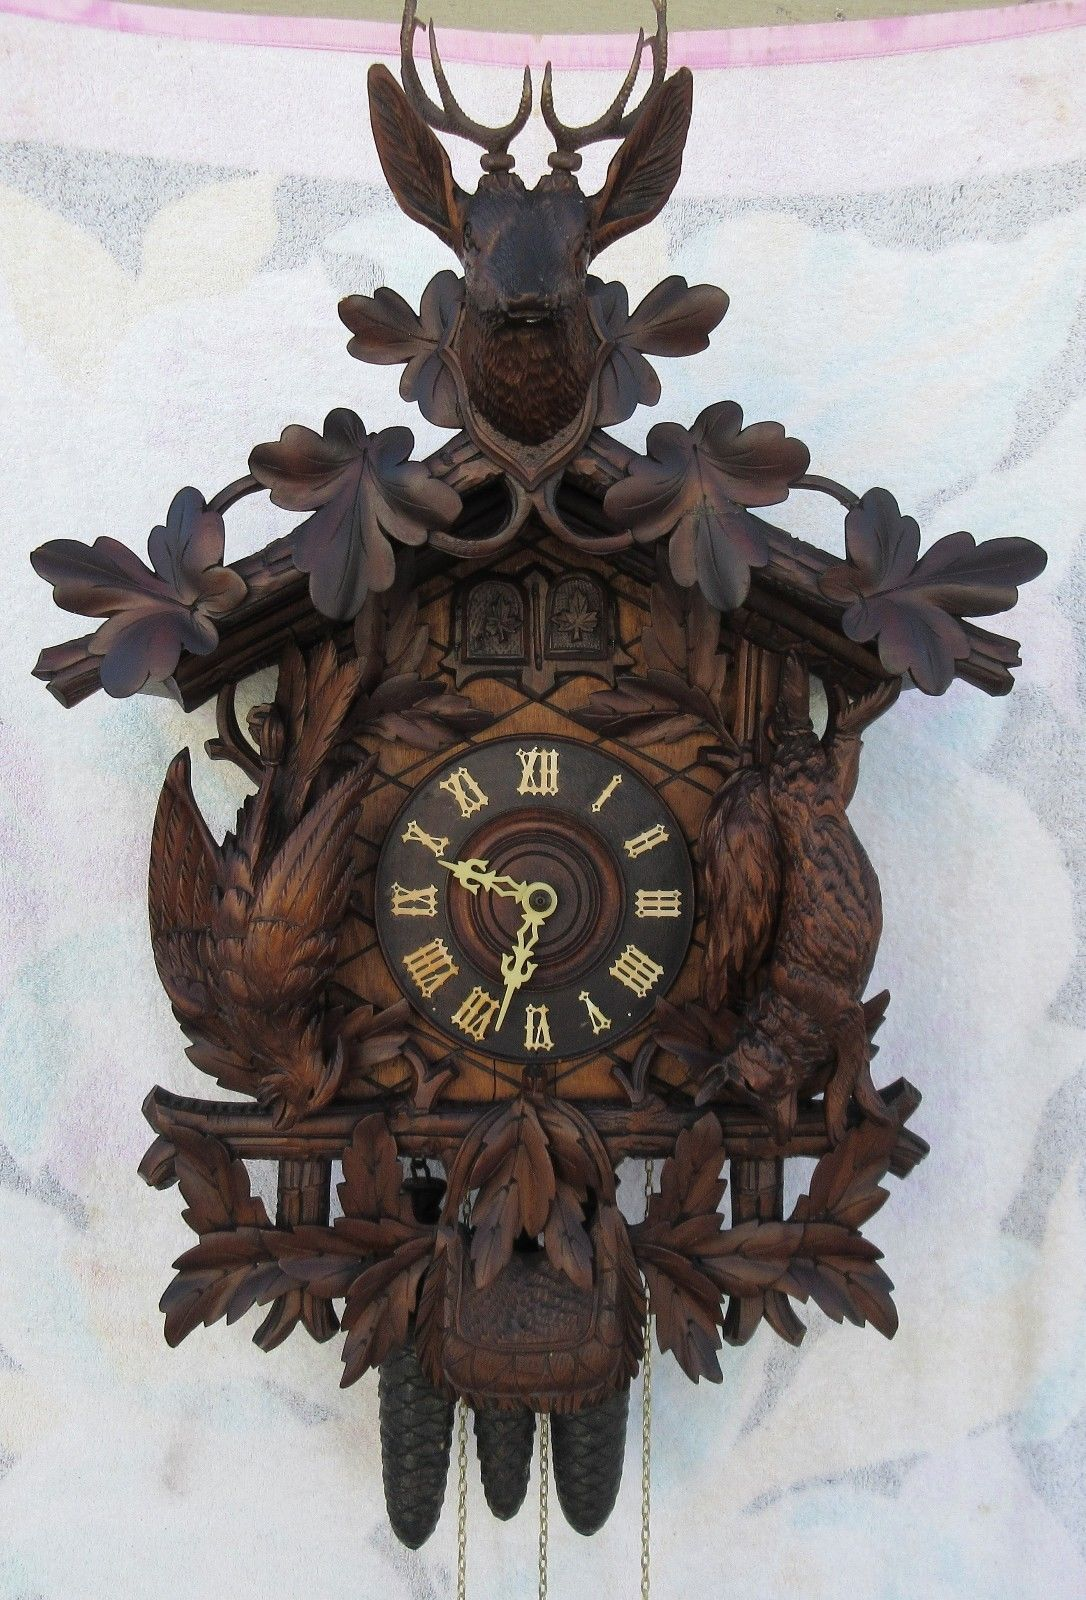 Prewar clock – hunter's dream clock